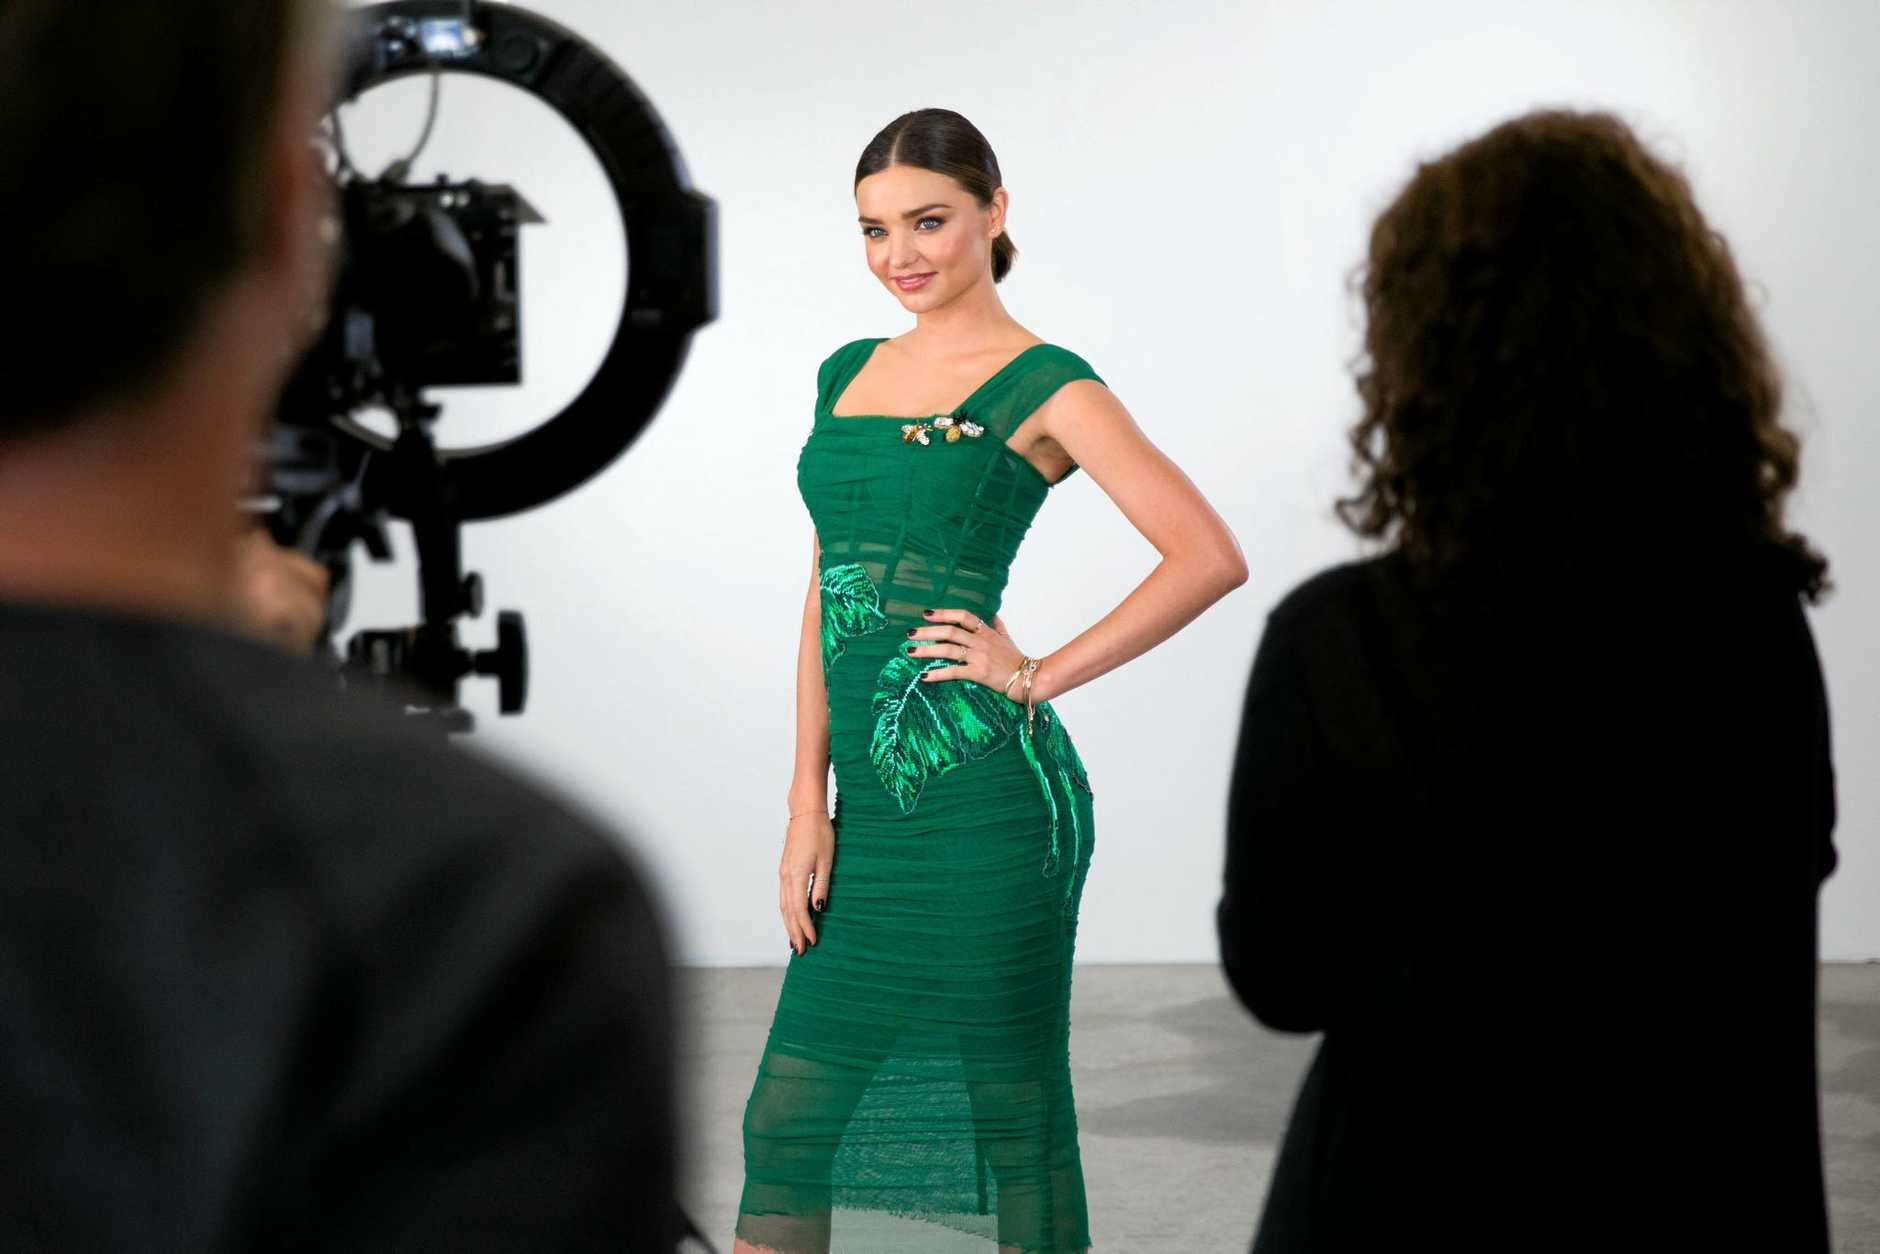 Miranda Kerr pictured on the set of the TV series Australia's Next Top Model.